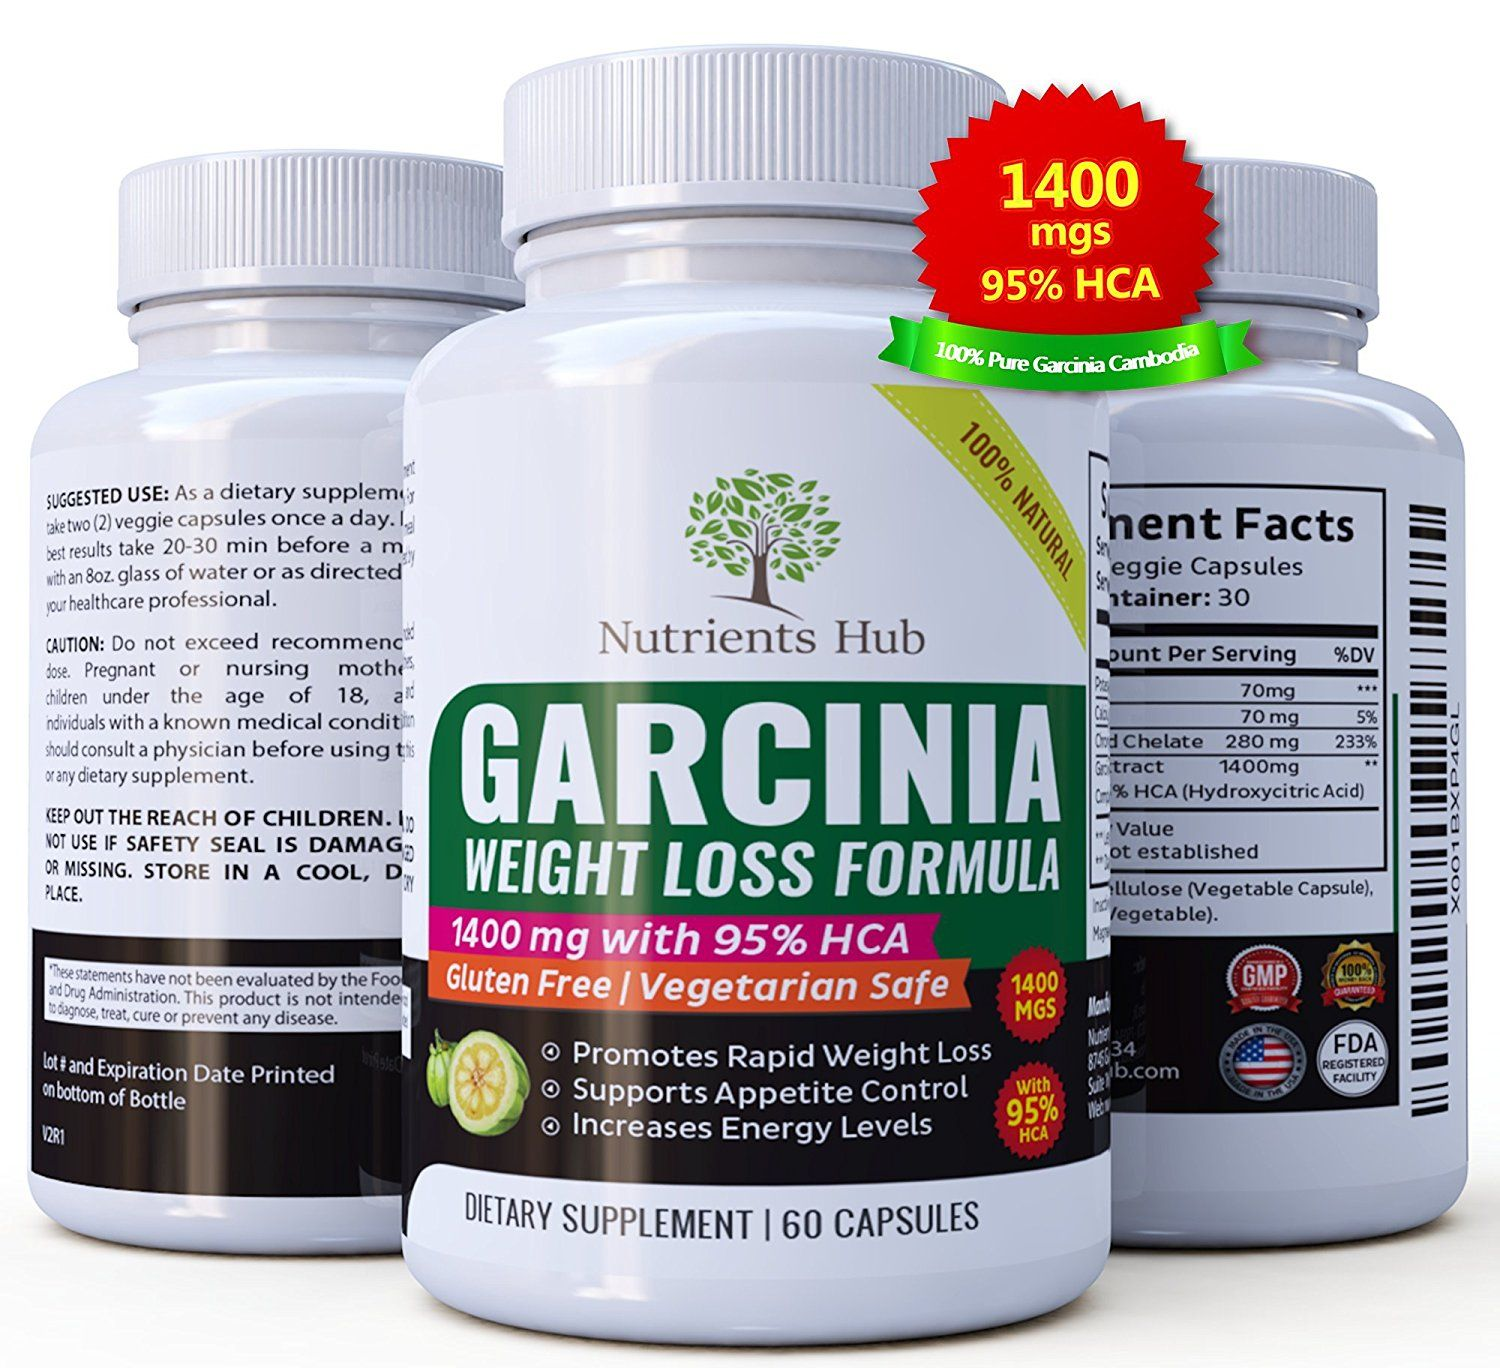 Hcg pills for weight loss side effects picture 9